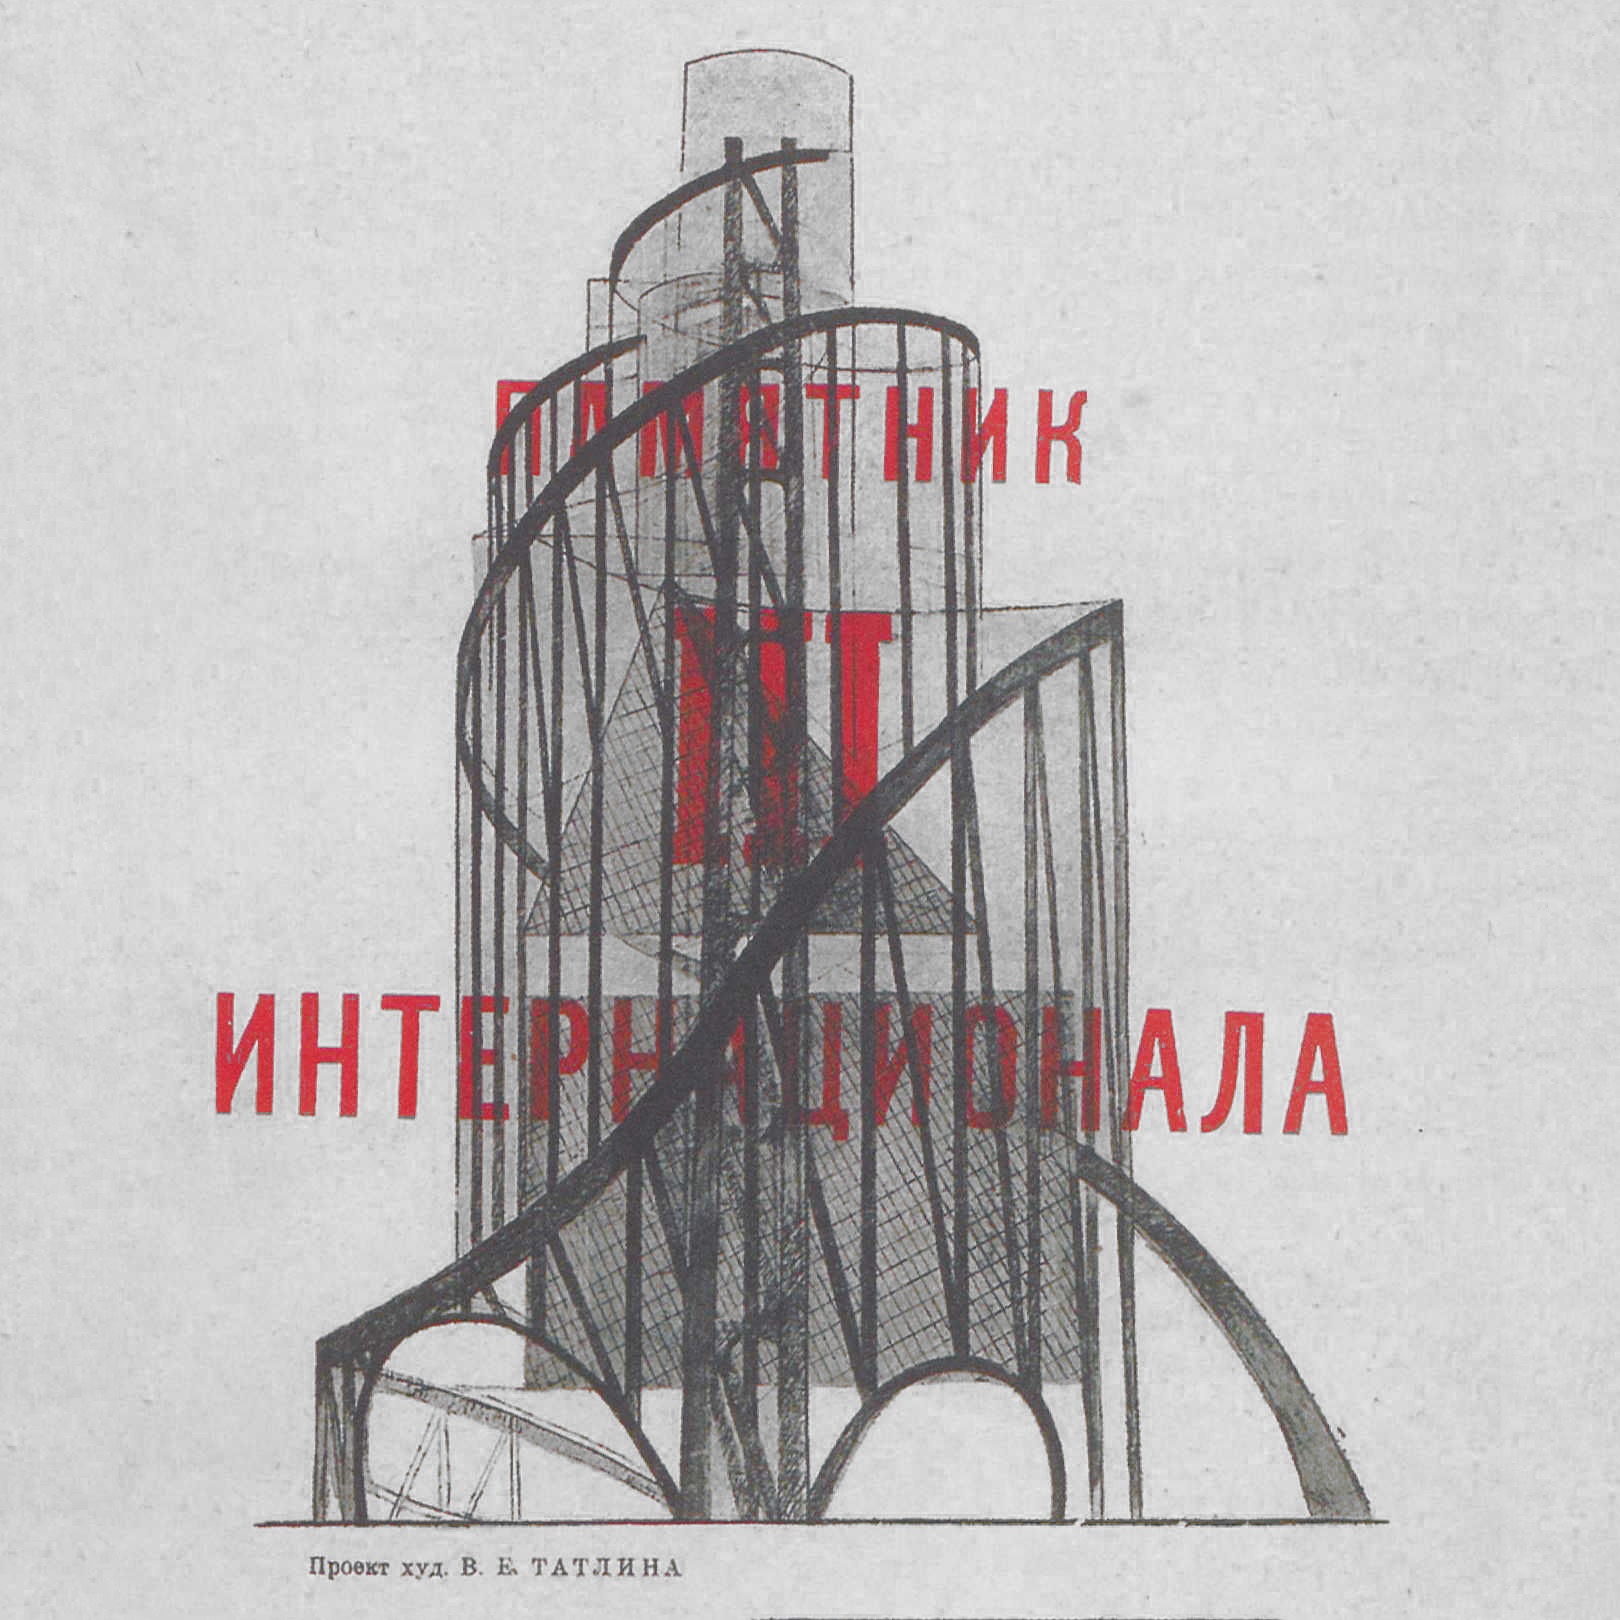 My edit of a drawing of the Monument to the Third International by Vladimir Tatlin